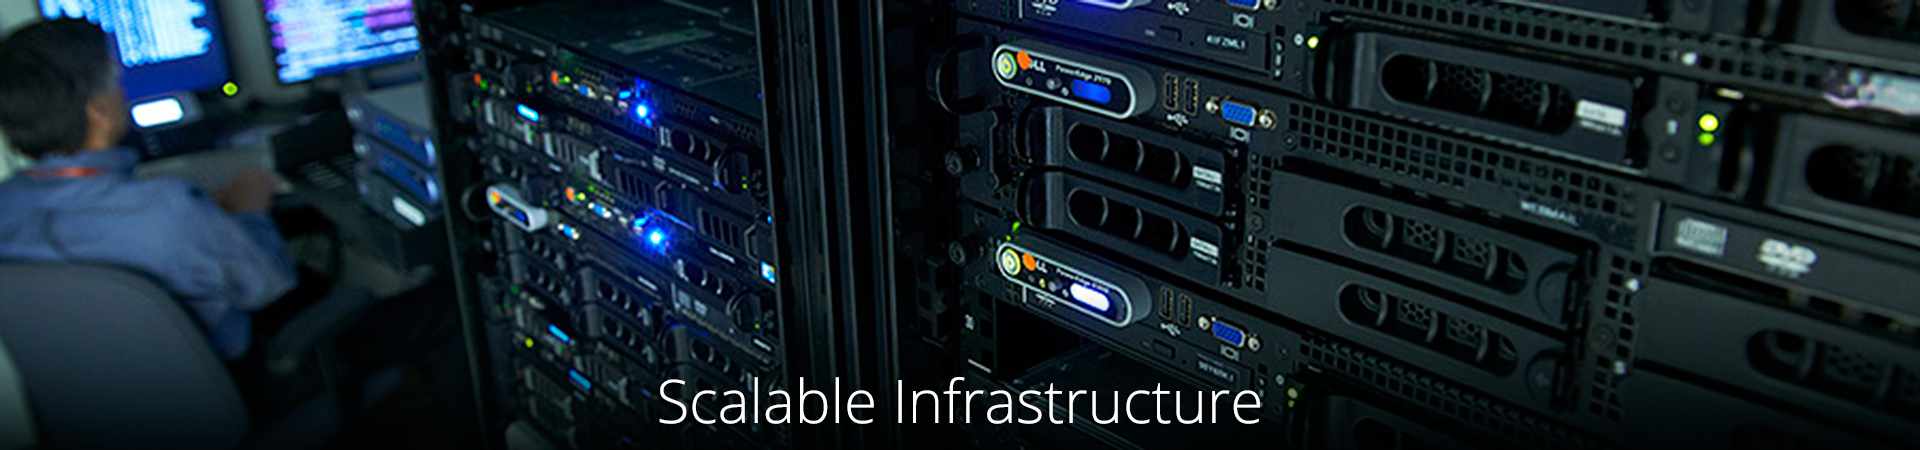 Scalable Infrastructure